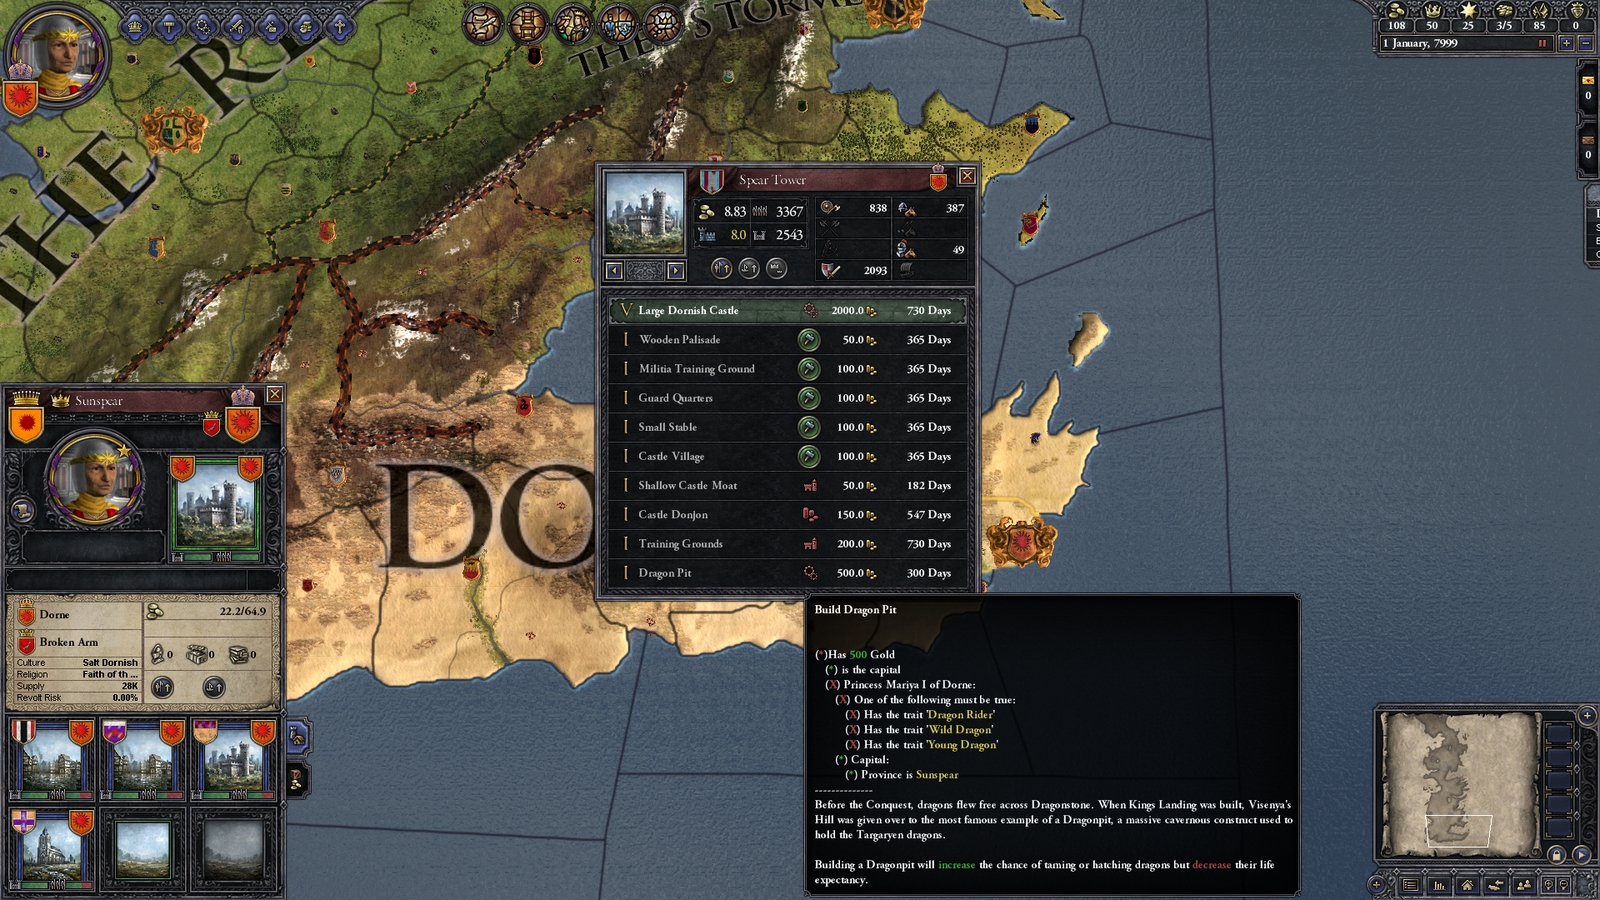 Crusader kings ii game of thrones